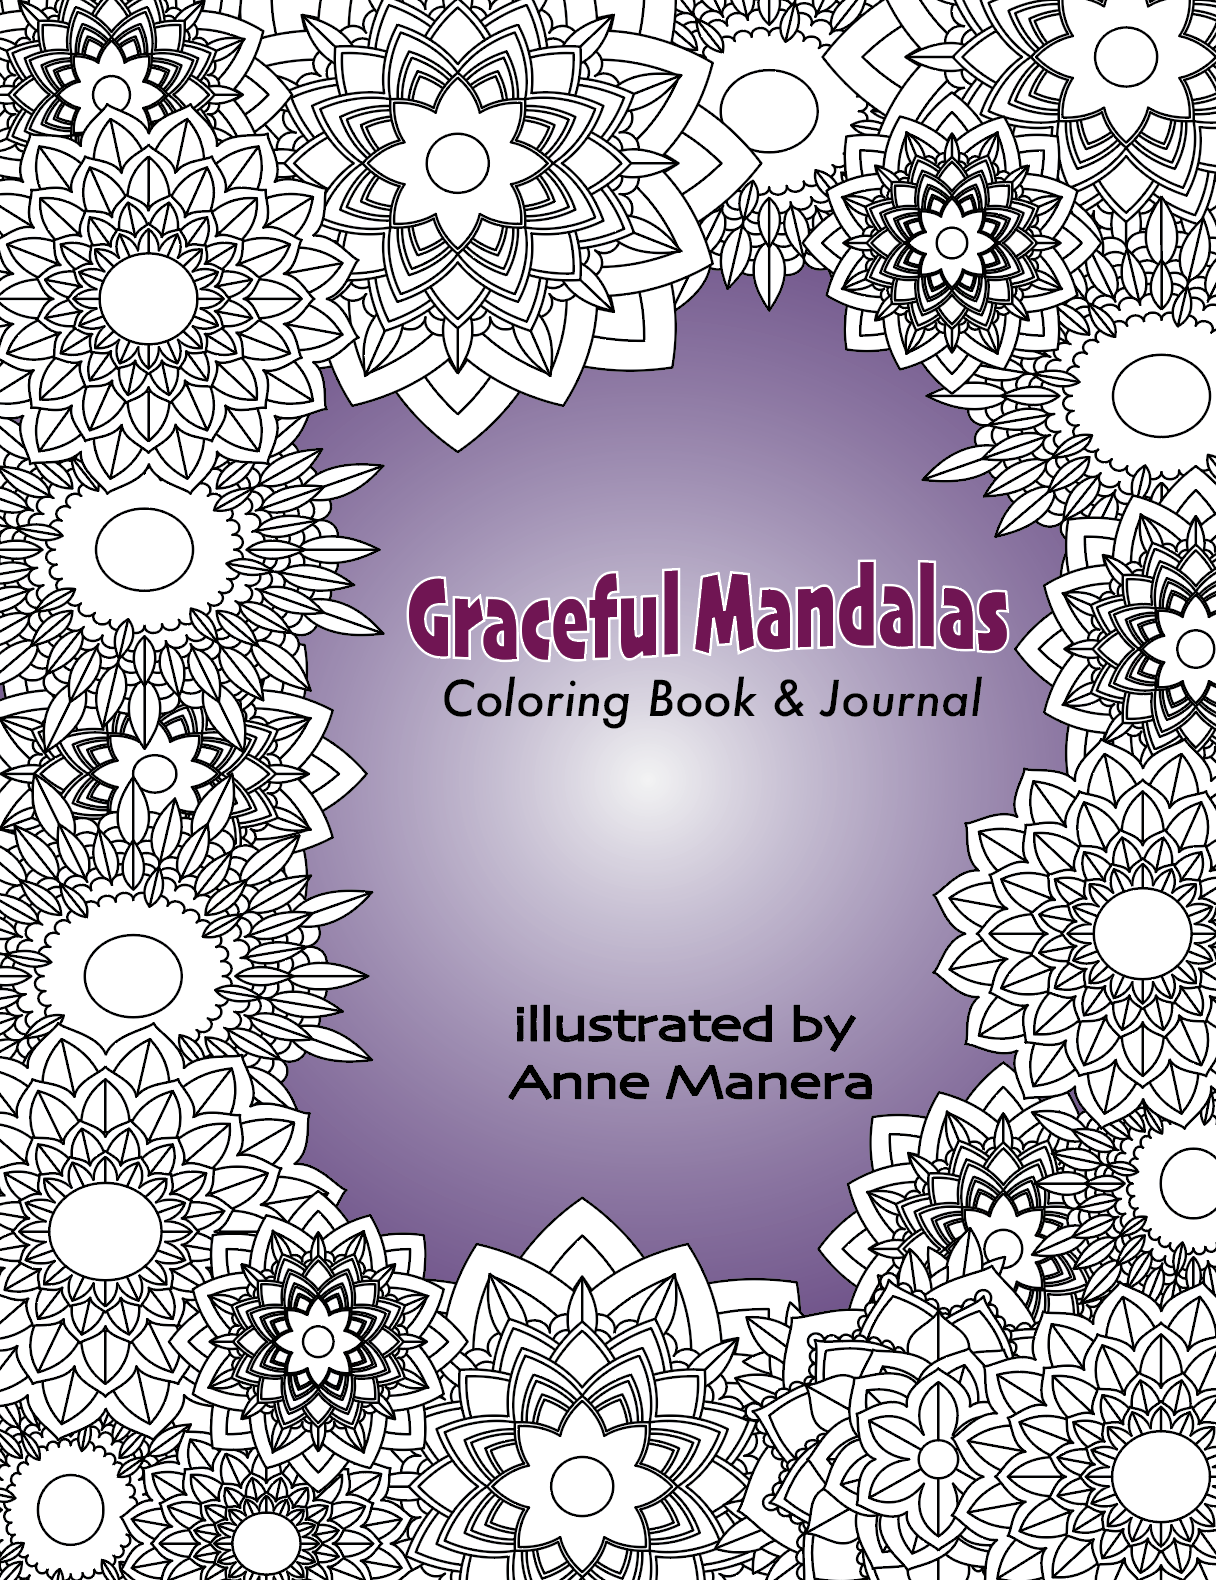 Graceful Mandalas Coloring Book & Journal illustrated by Anne ...